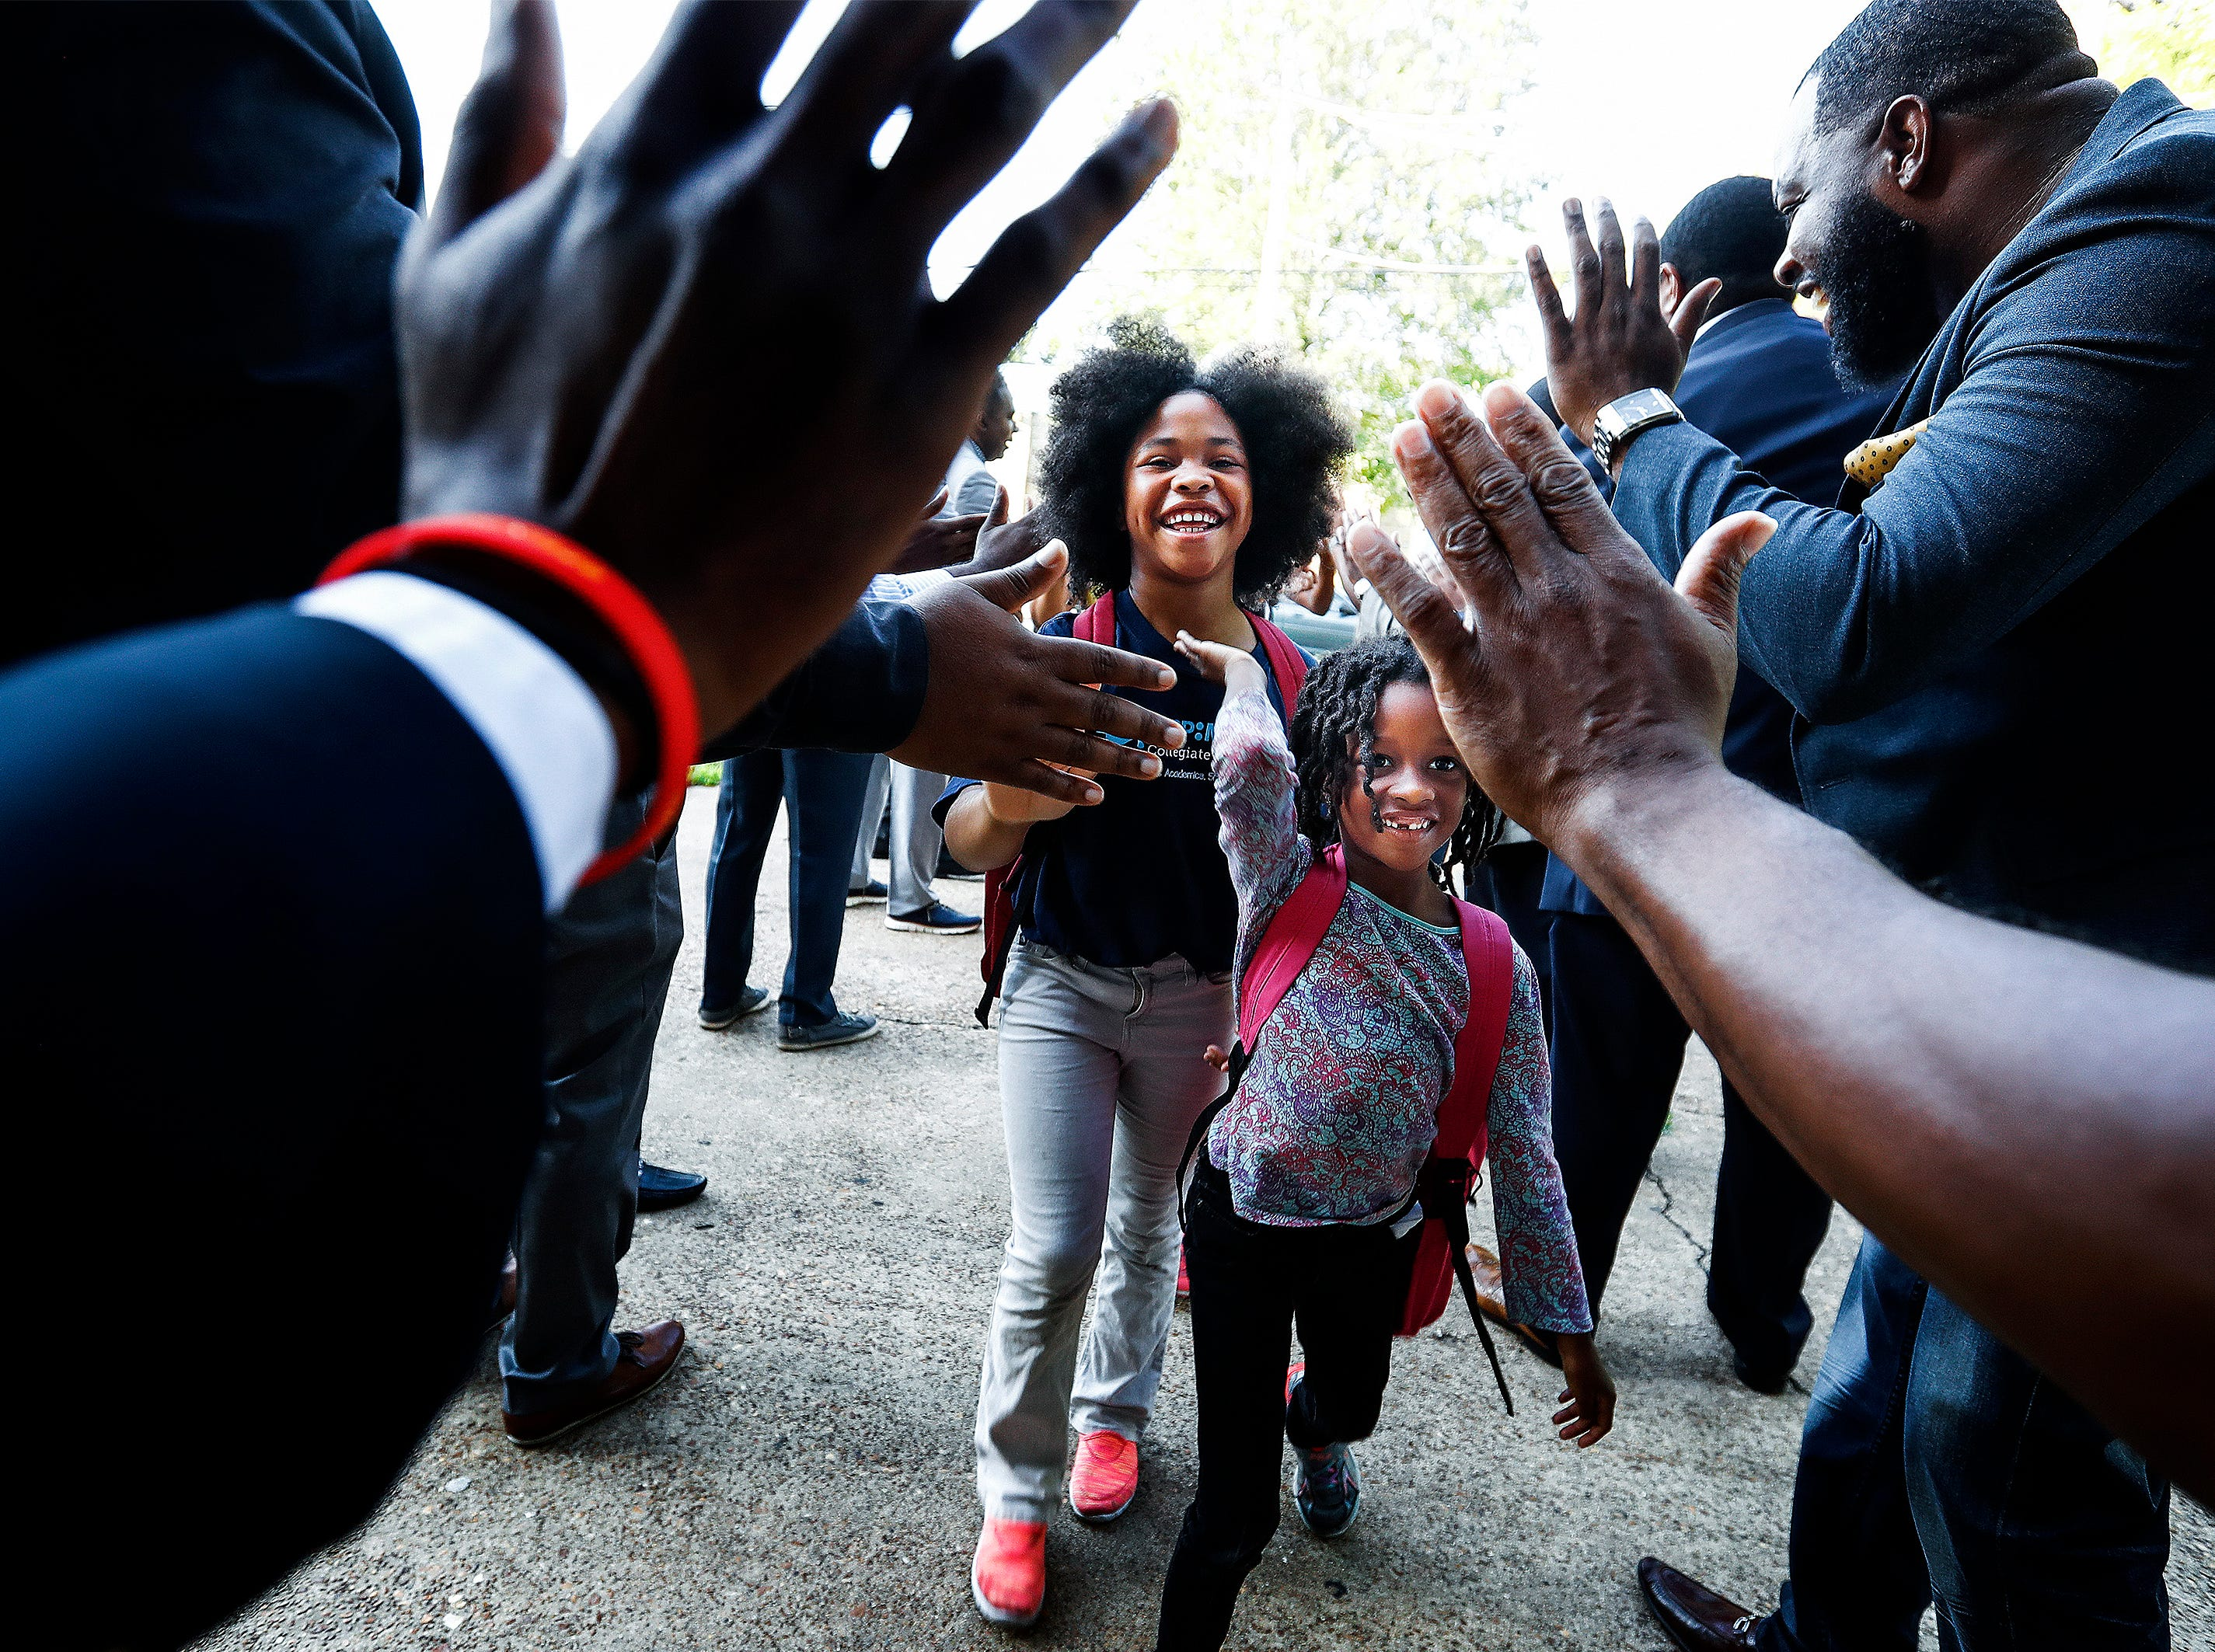 KIPP Memphis Collegiate Elementary students Lisa Taylor, 9, (left) and Lauren Walker, 5, (right) are greeted by members of the Men's Morning Huddle, as they get high fives after arriving for the first day of school. Throughout the year, the group that brings men together to set a positive example for children, will ascend on area schools to help motivate students.